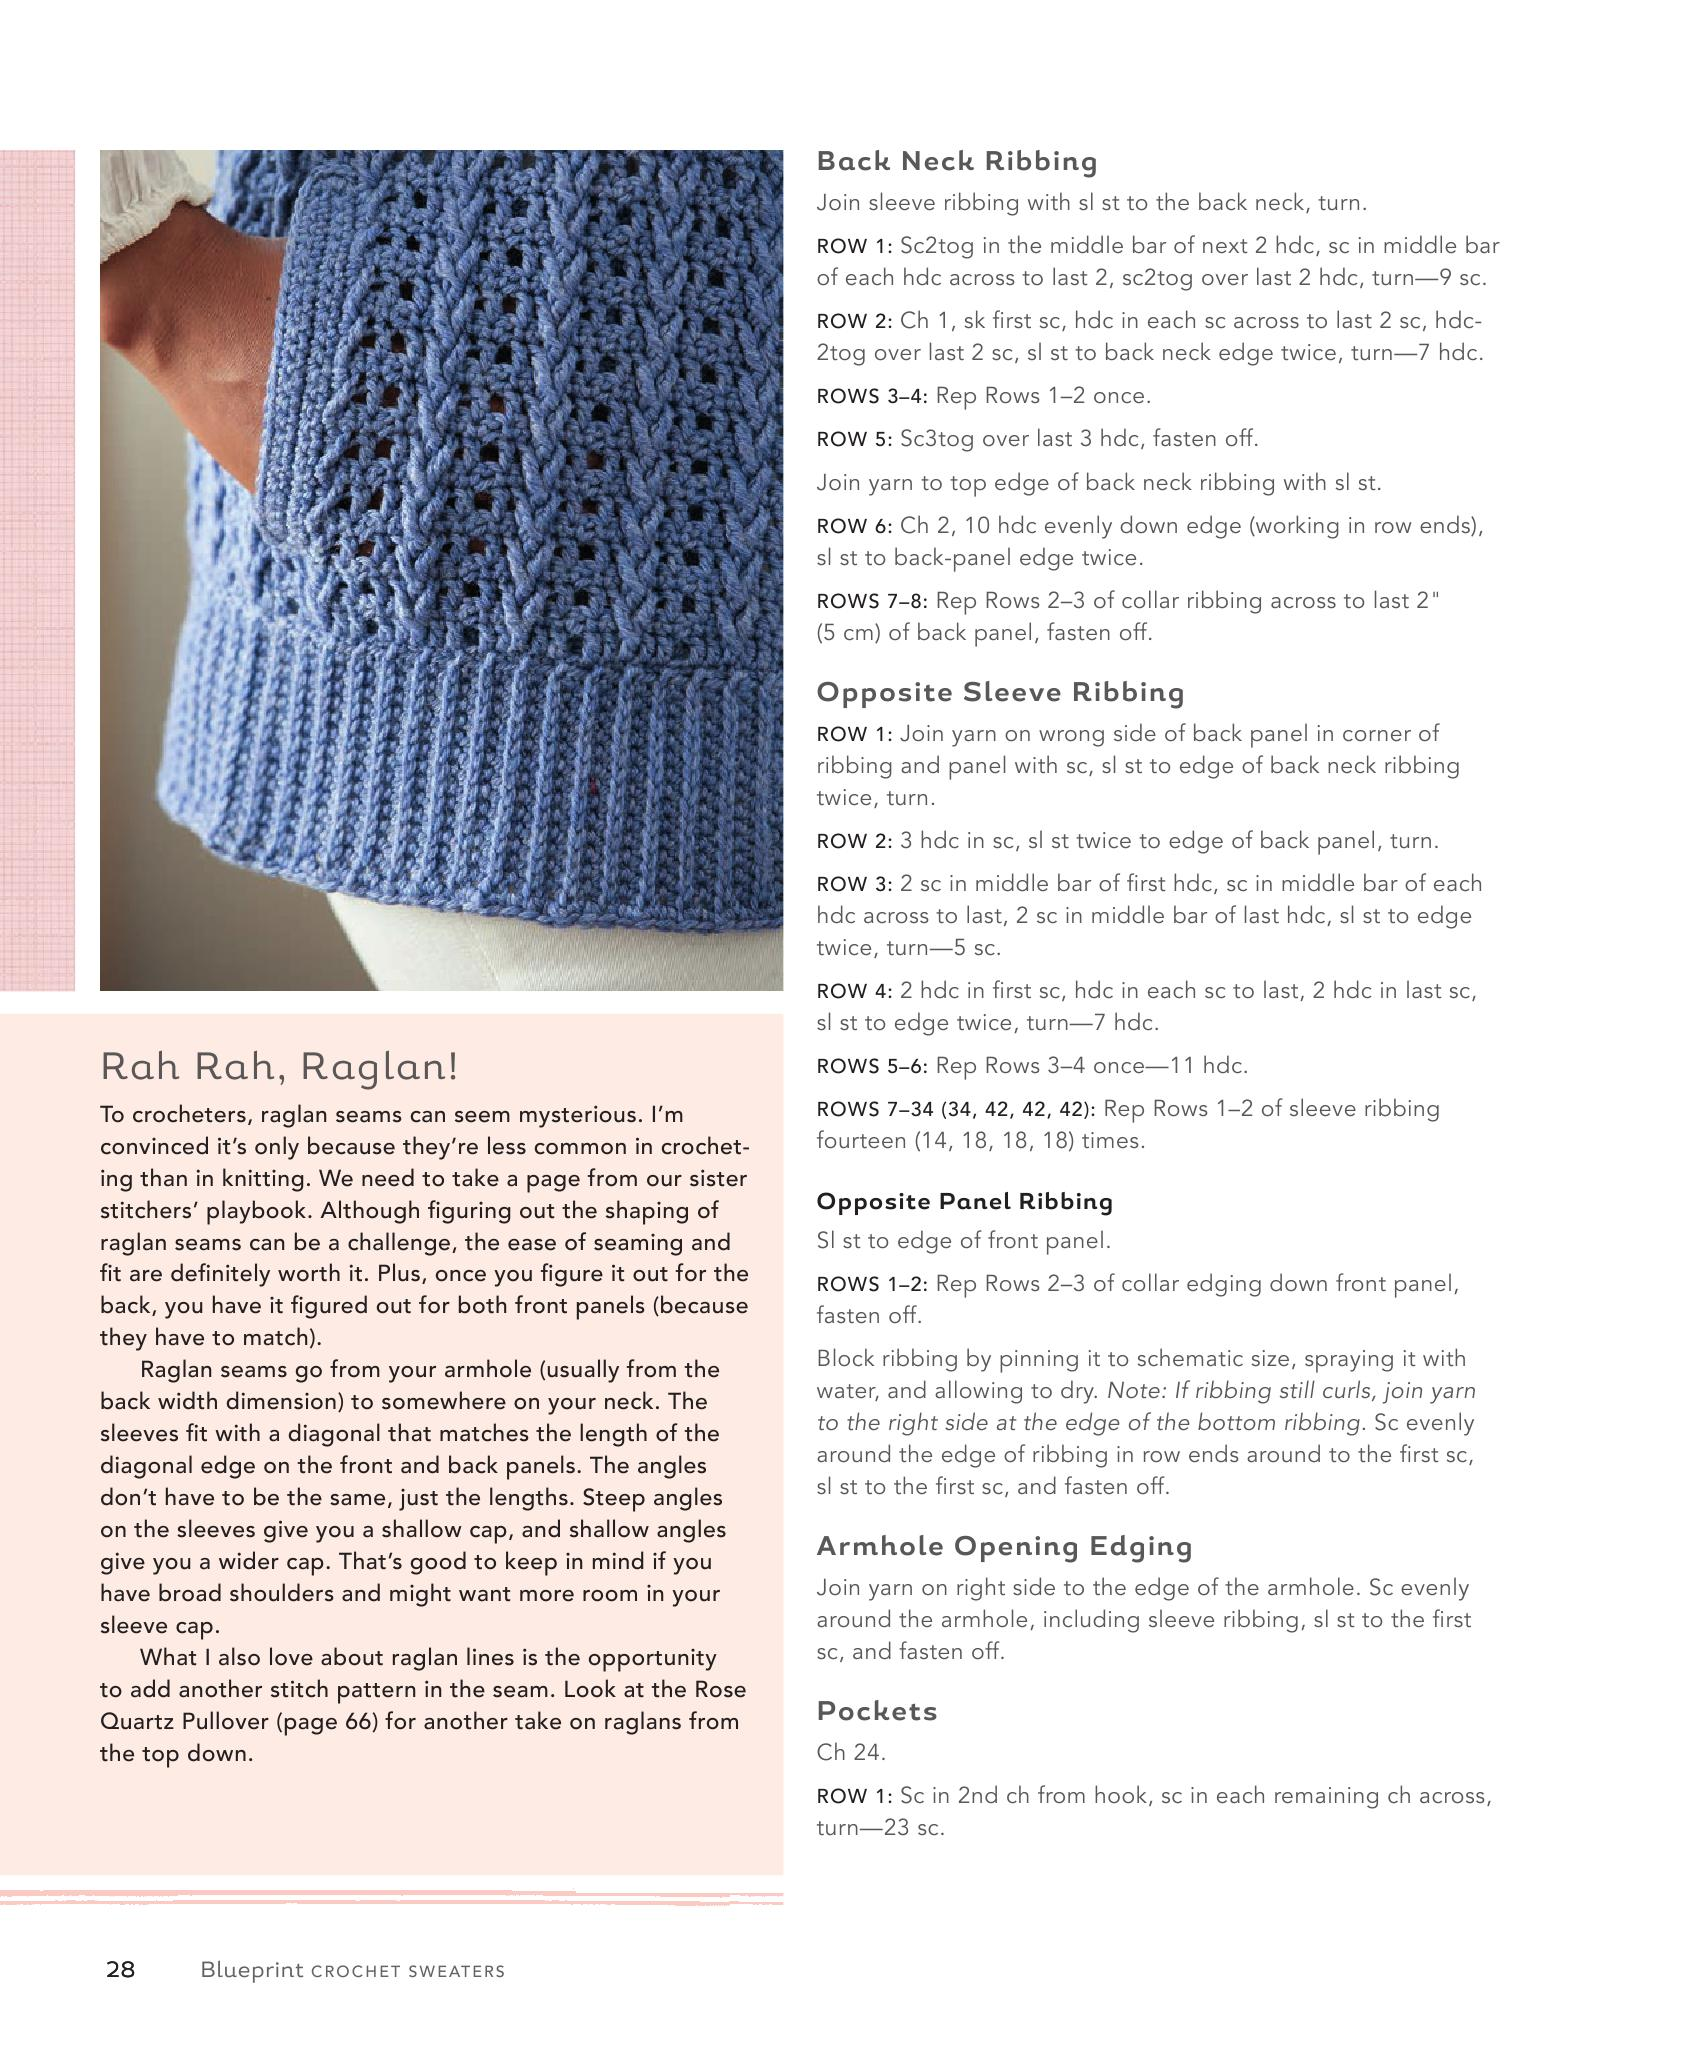 1151_Blueprint Crochet Sweaters_25 (5)